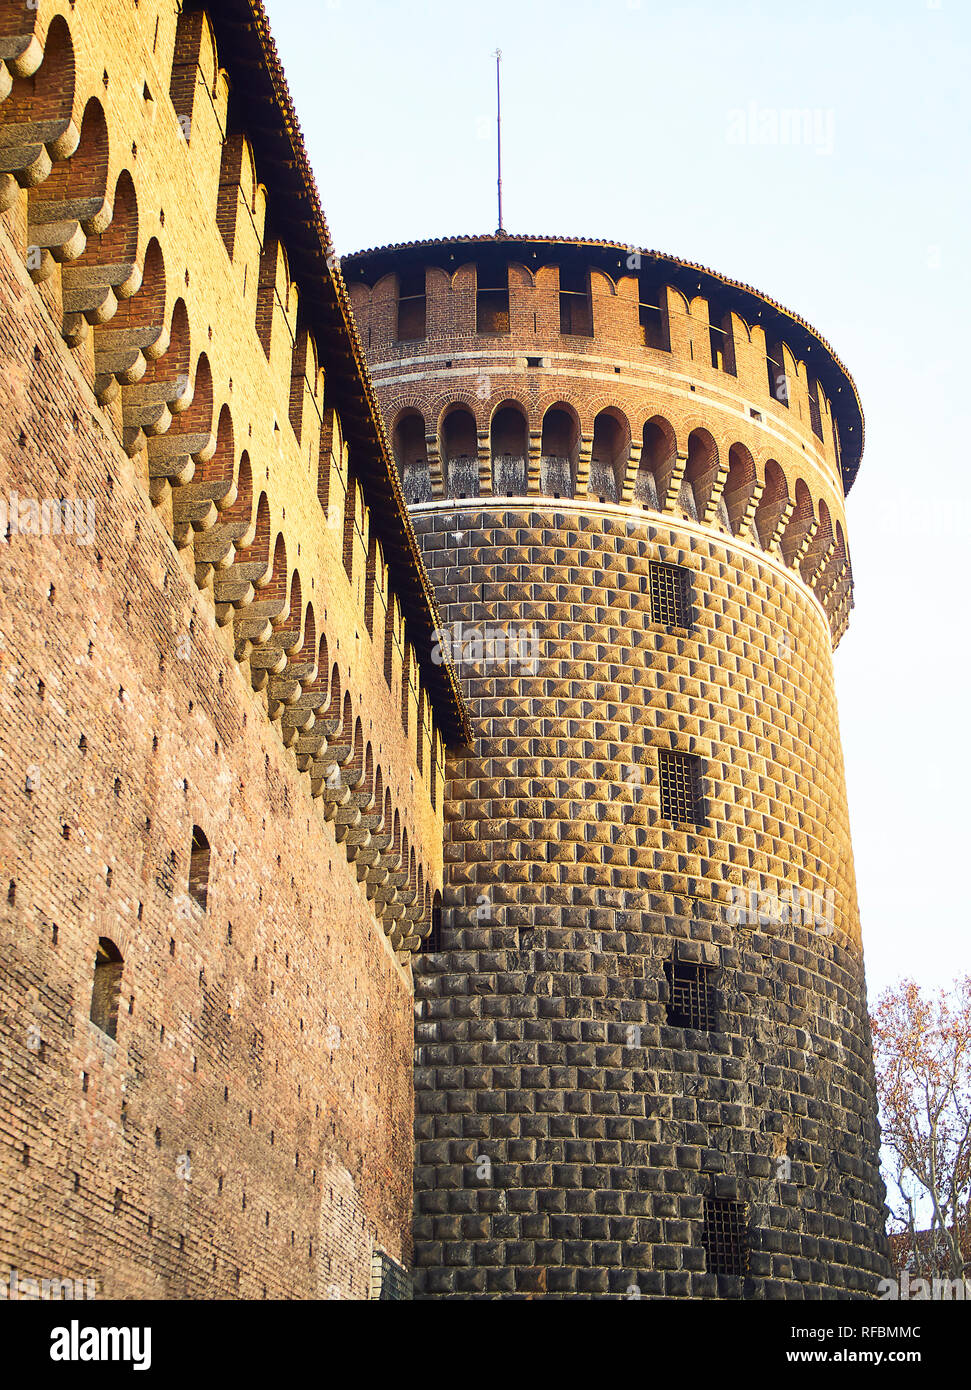 Torrione di Santo Spirito, Tower of the Holy Spirit of the Castello Sforzesco, Sforza Castle, at sunset. Milan, Lombardy, Italy. - Stock Image